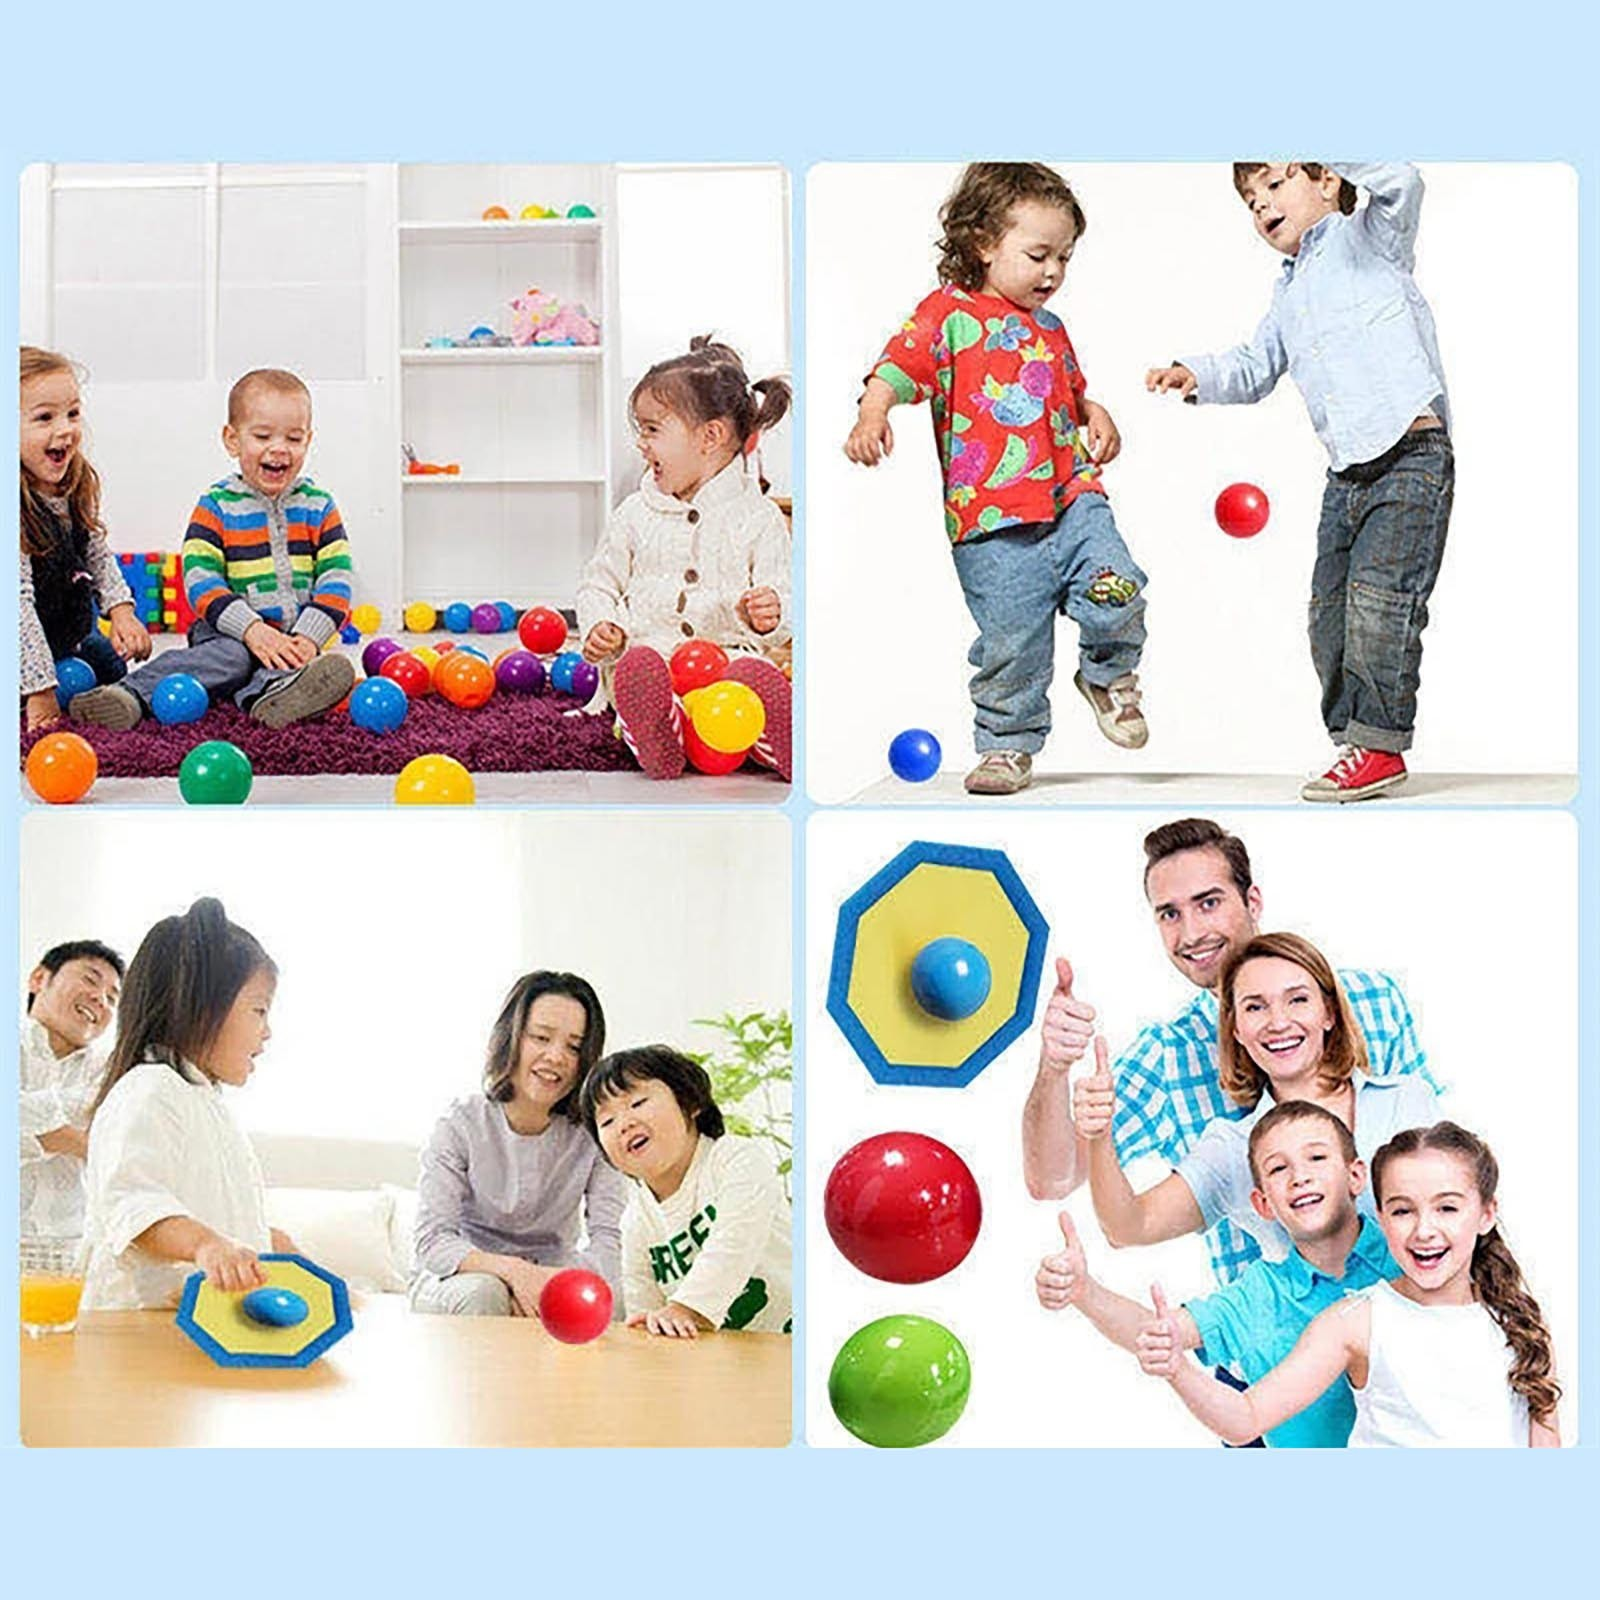 Relief-Toy Tossing-Ball Sticky-Target-Ball-Stress Ceiling Gift Adults Kids Novelty Hot img5